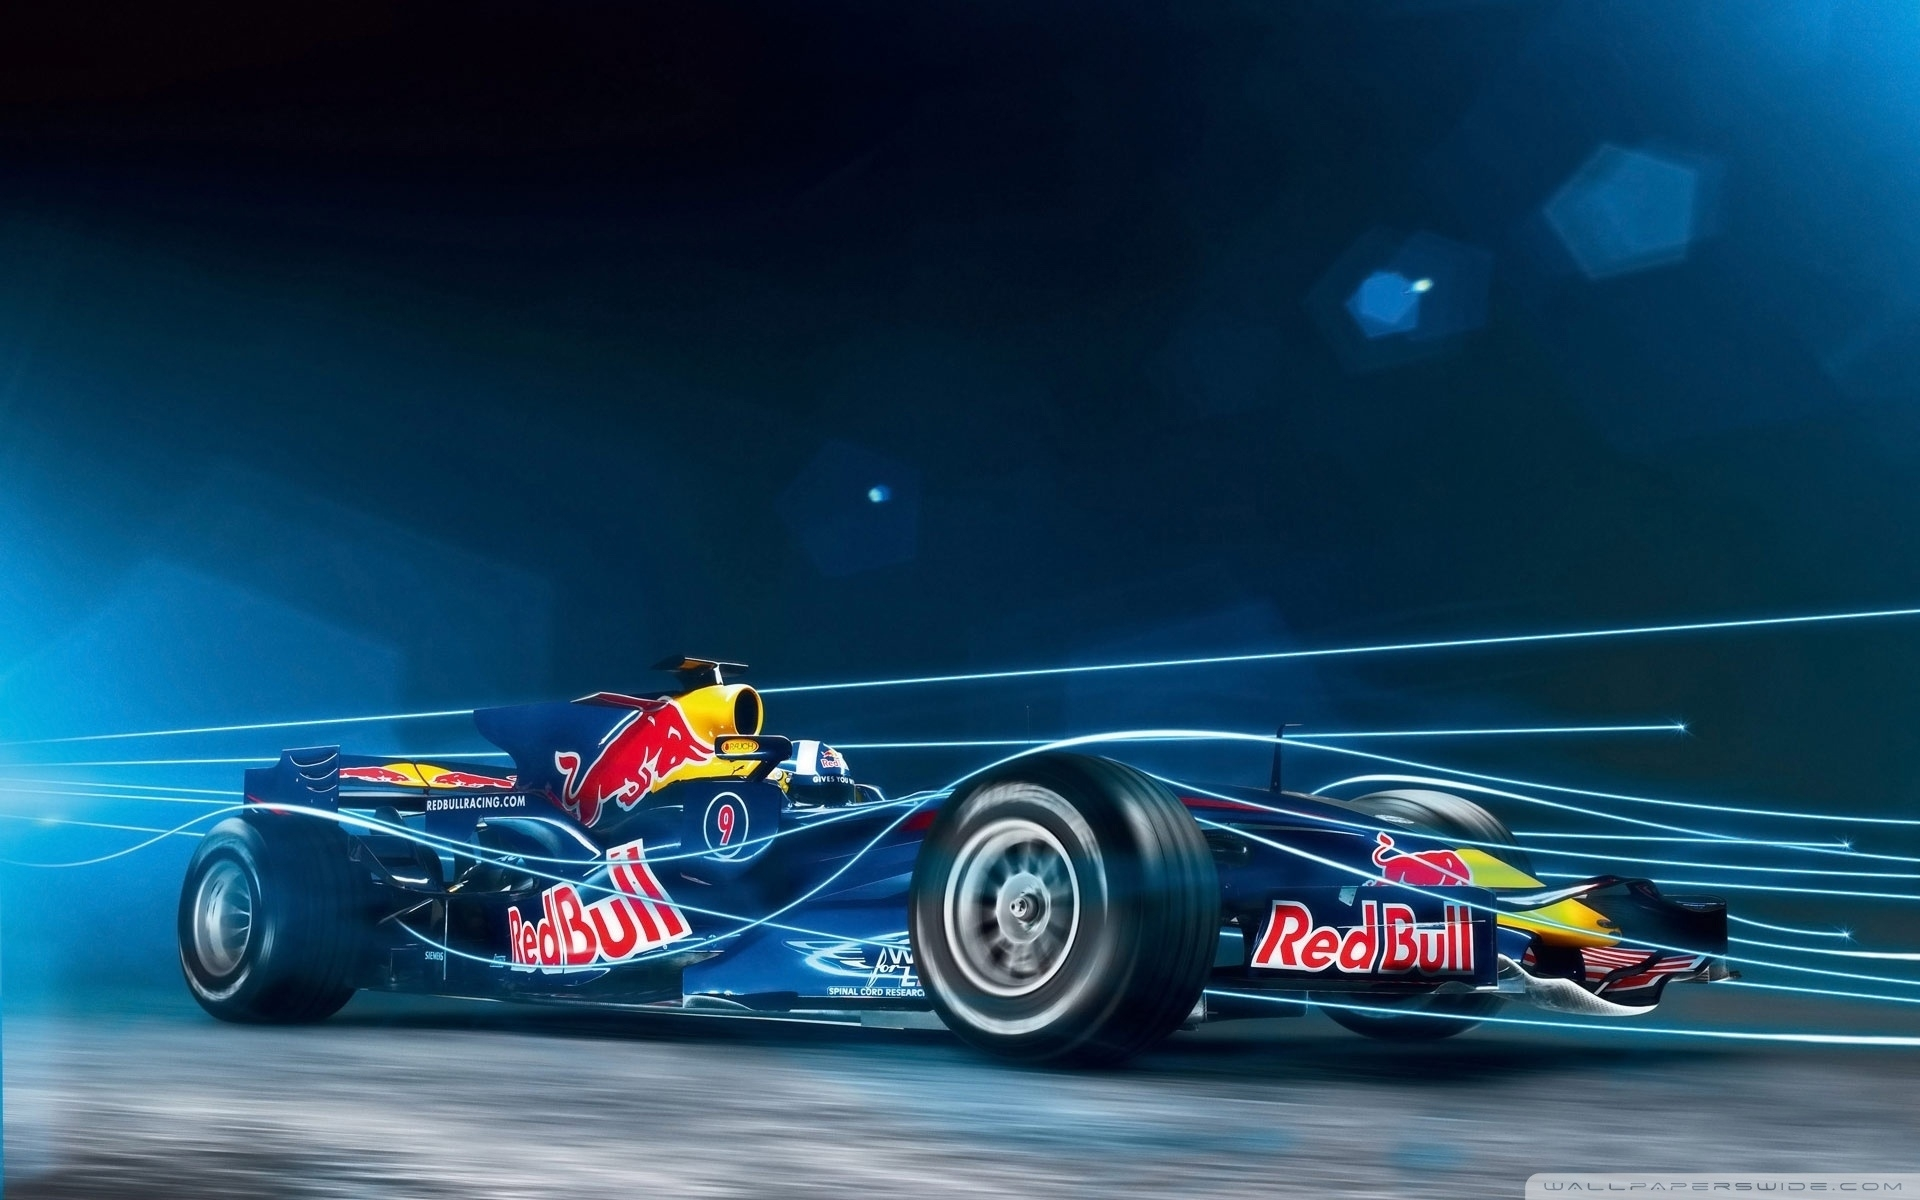 red bull formula 1 car ❤ 4k hd desktop wallpaper for 4k ultra hd tv